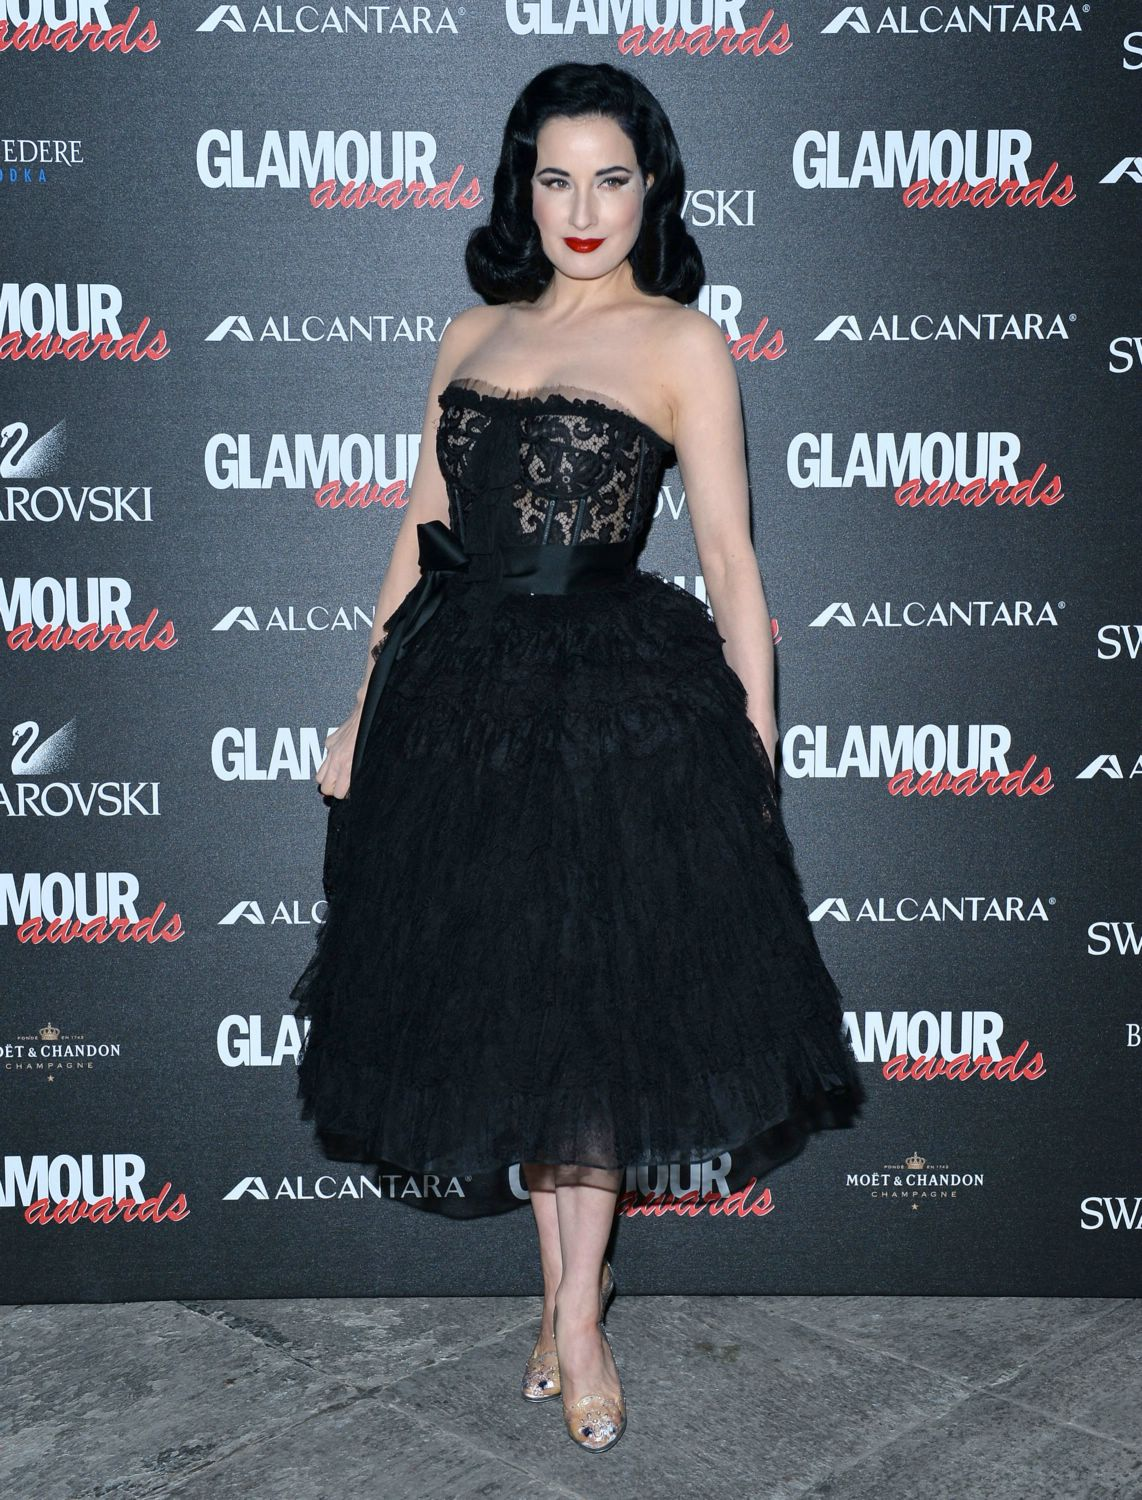 Dita-von-teese-dec-11-glamour-awards02